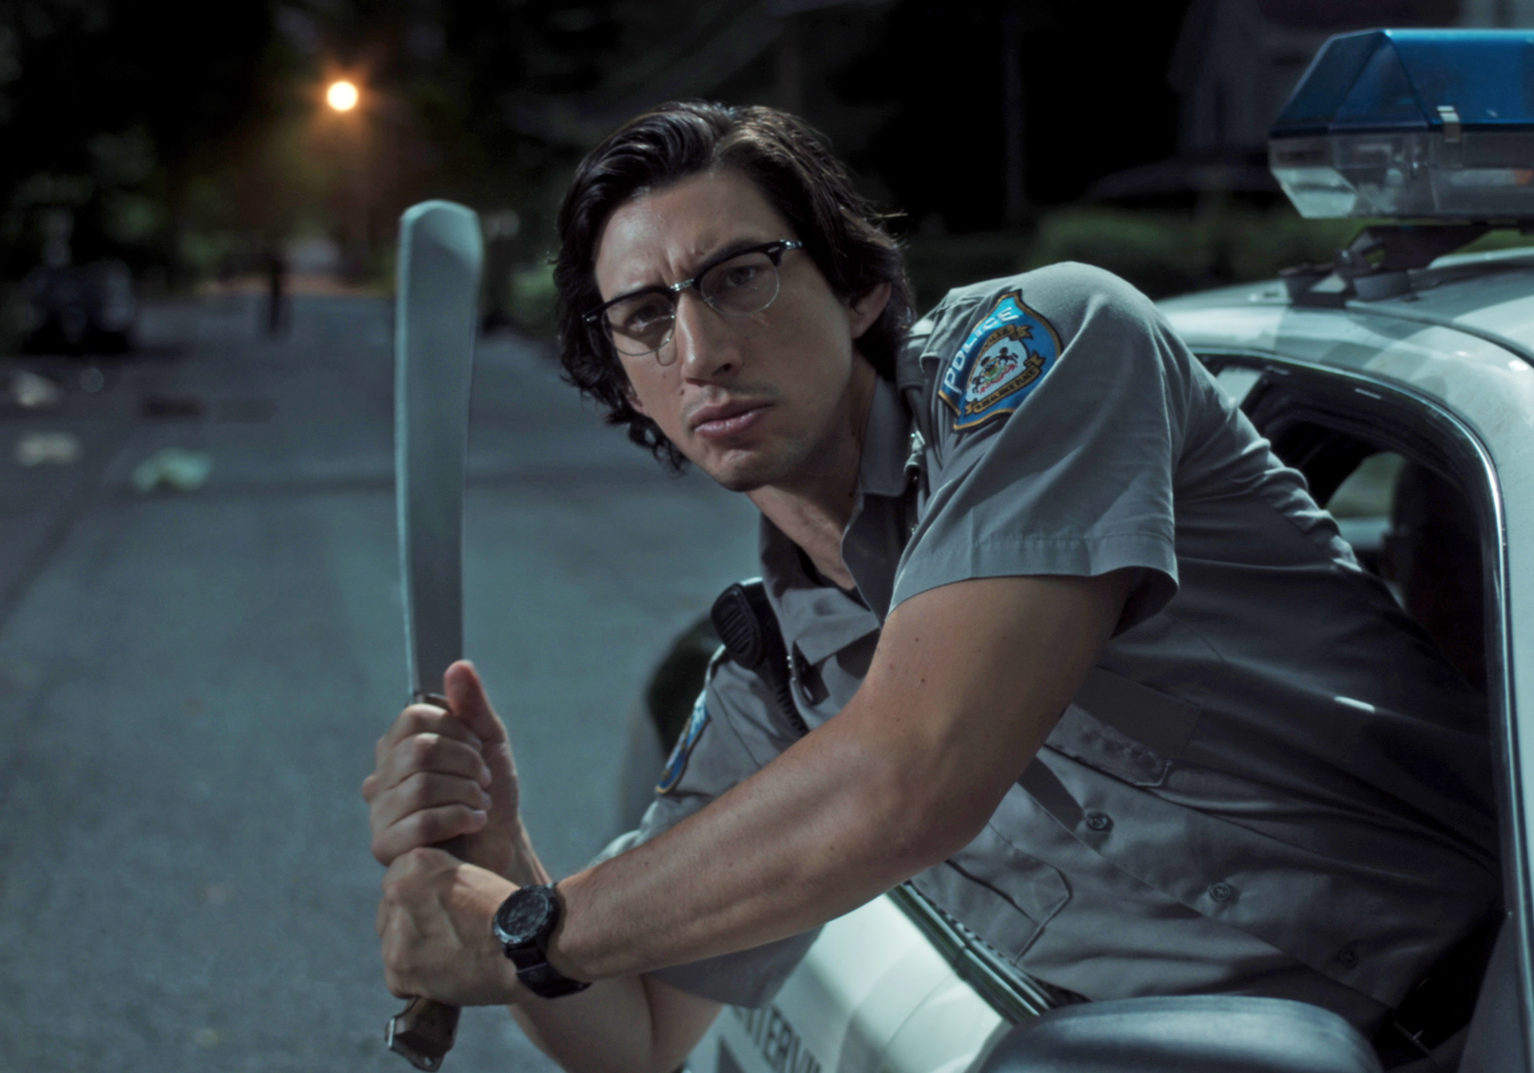 """Adam Driver stars as """"Officer Ronald Peterson"""" in writer/director Jim Jarmusch's THE DEAD DON'T DIE, a Focus Features release.  Credit : Frederick Elmes / Focus Features  © 2019 Image Eleven Productions, Inc."""